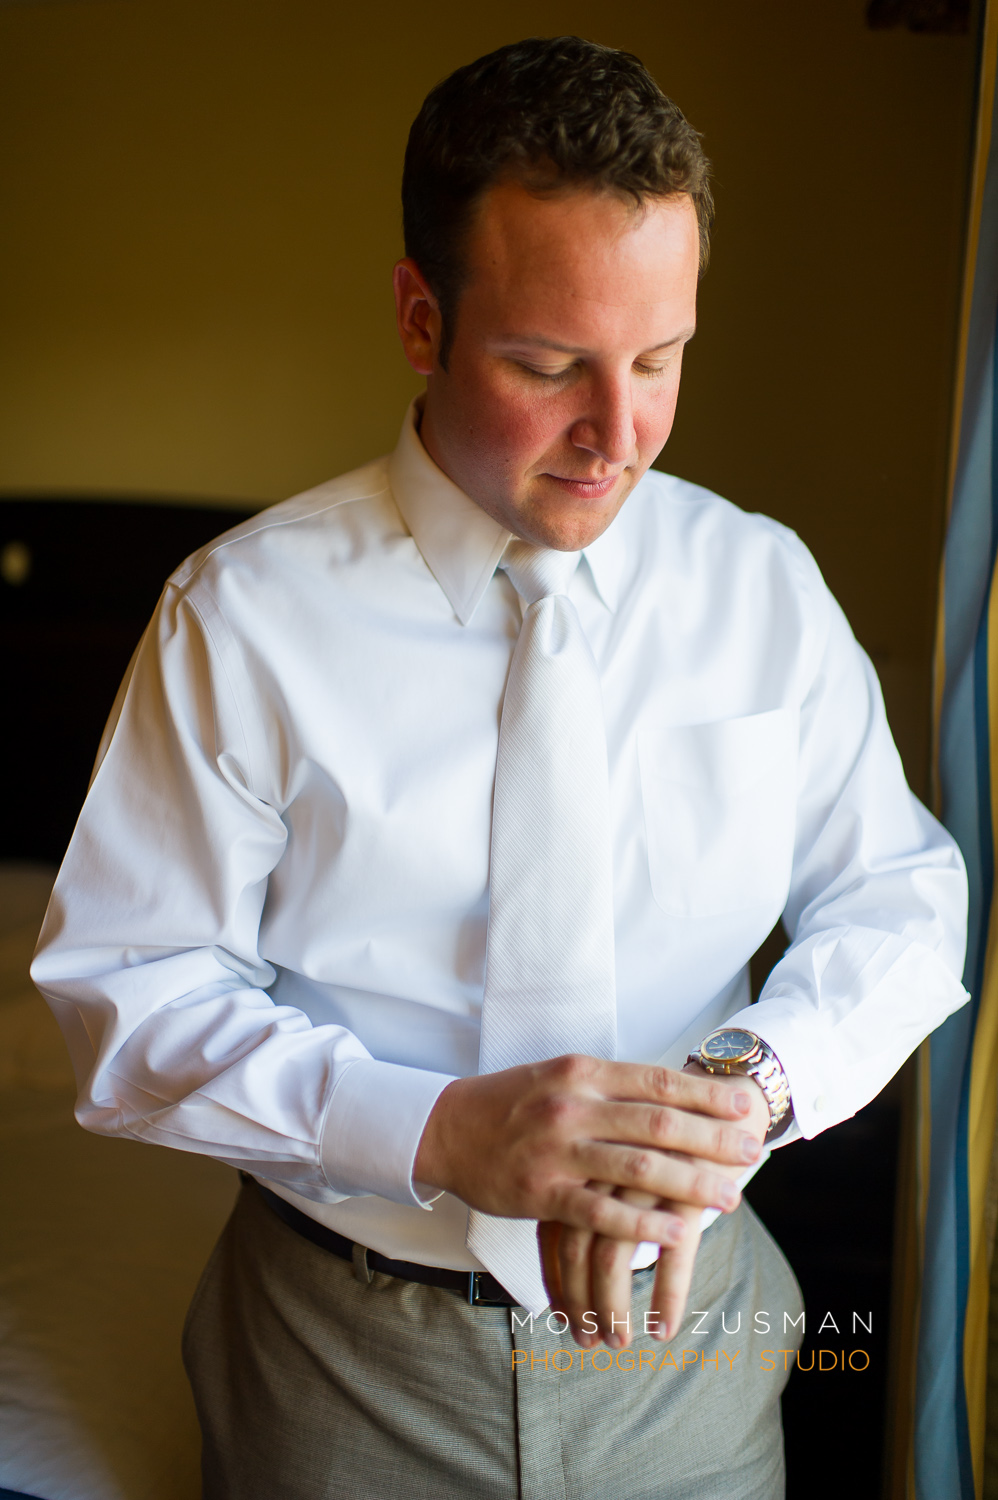 annapolis_Wedding_Photographer_Moshe_Zusman_Historic_London_Town_and_Gardens-12.jpg